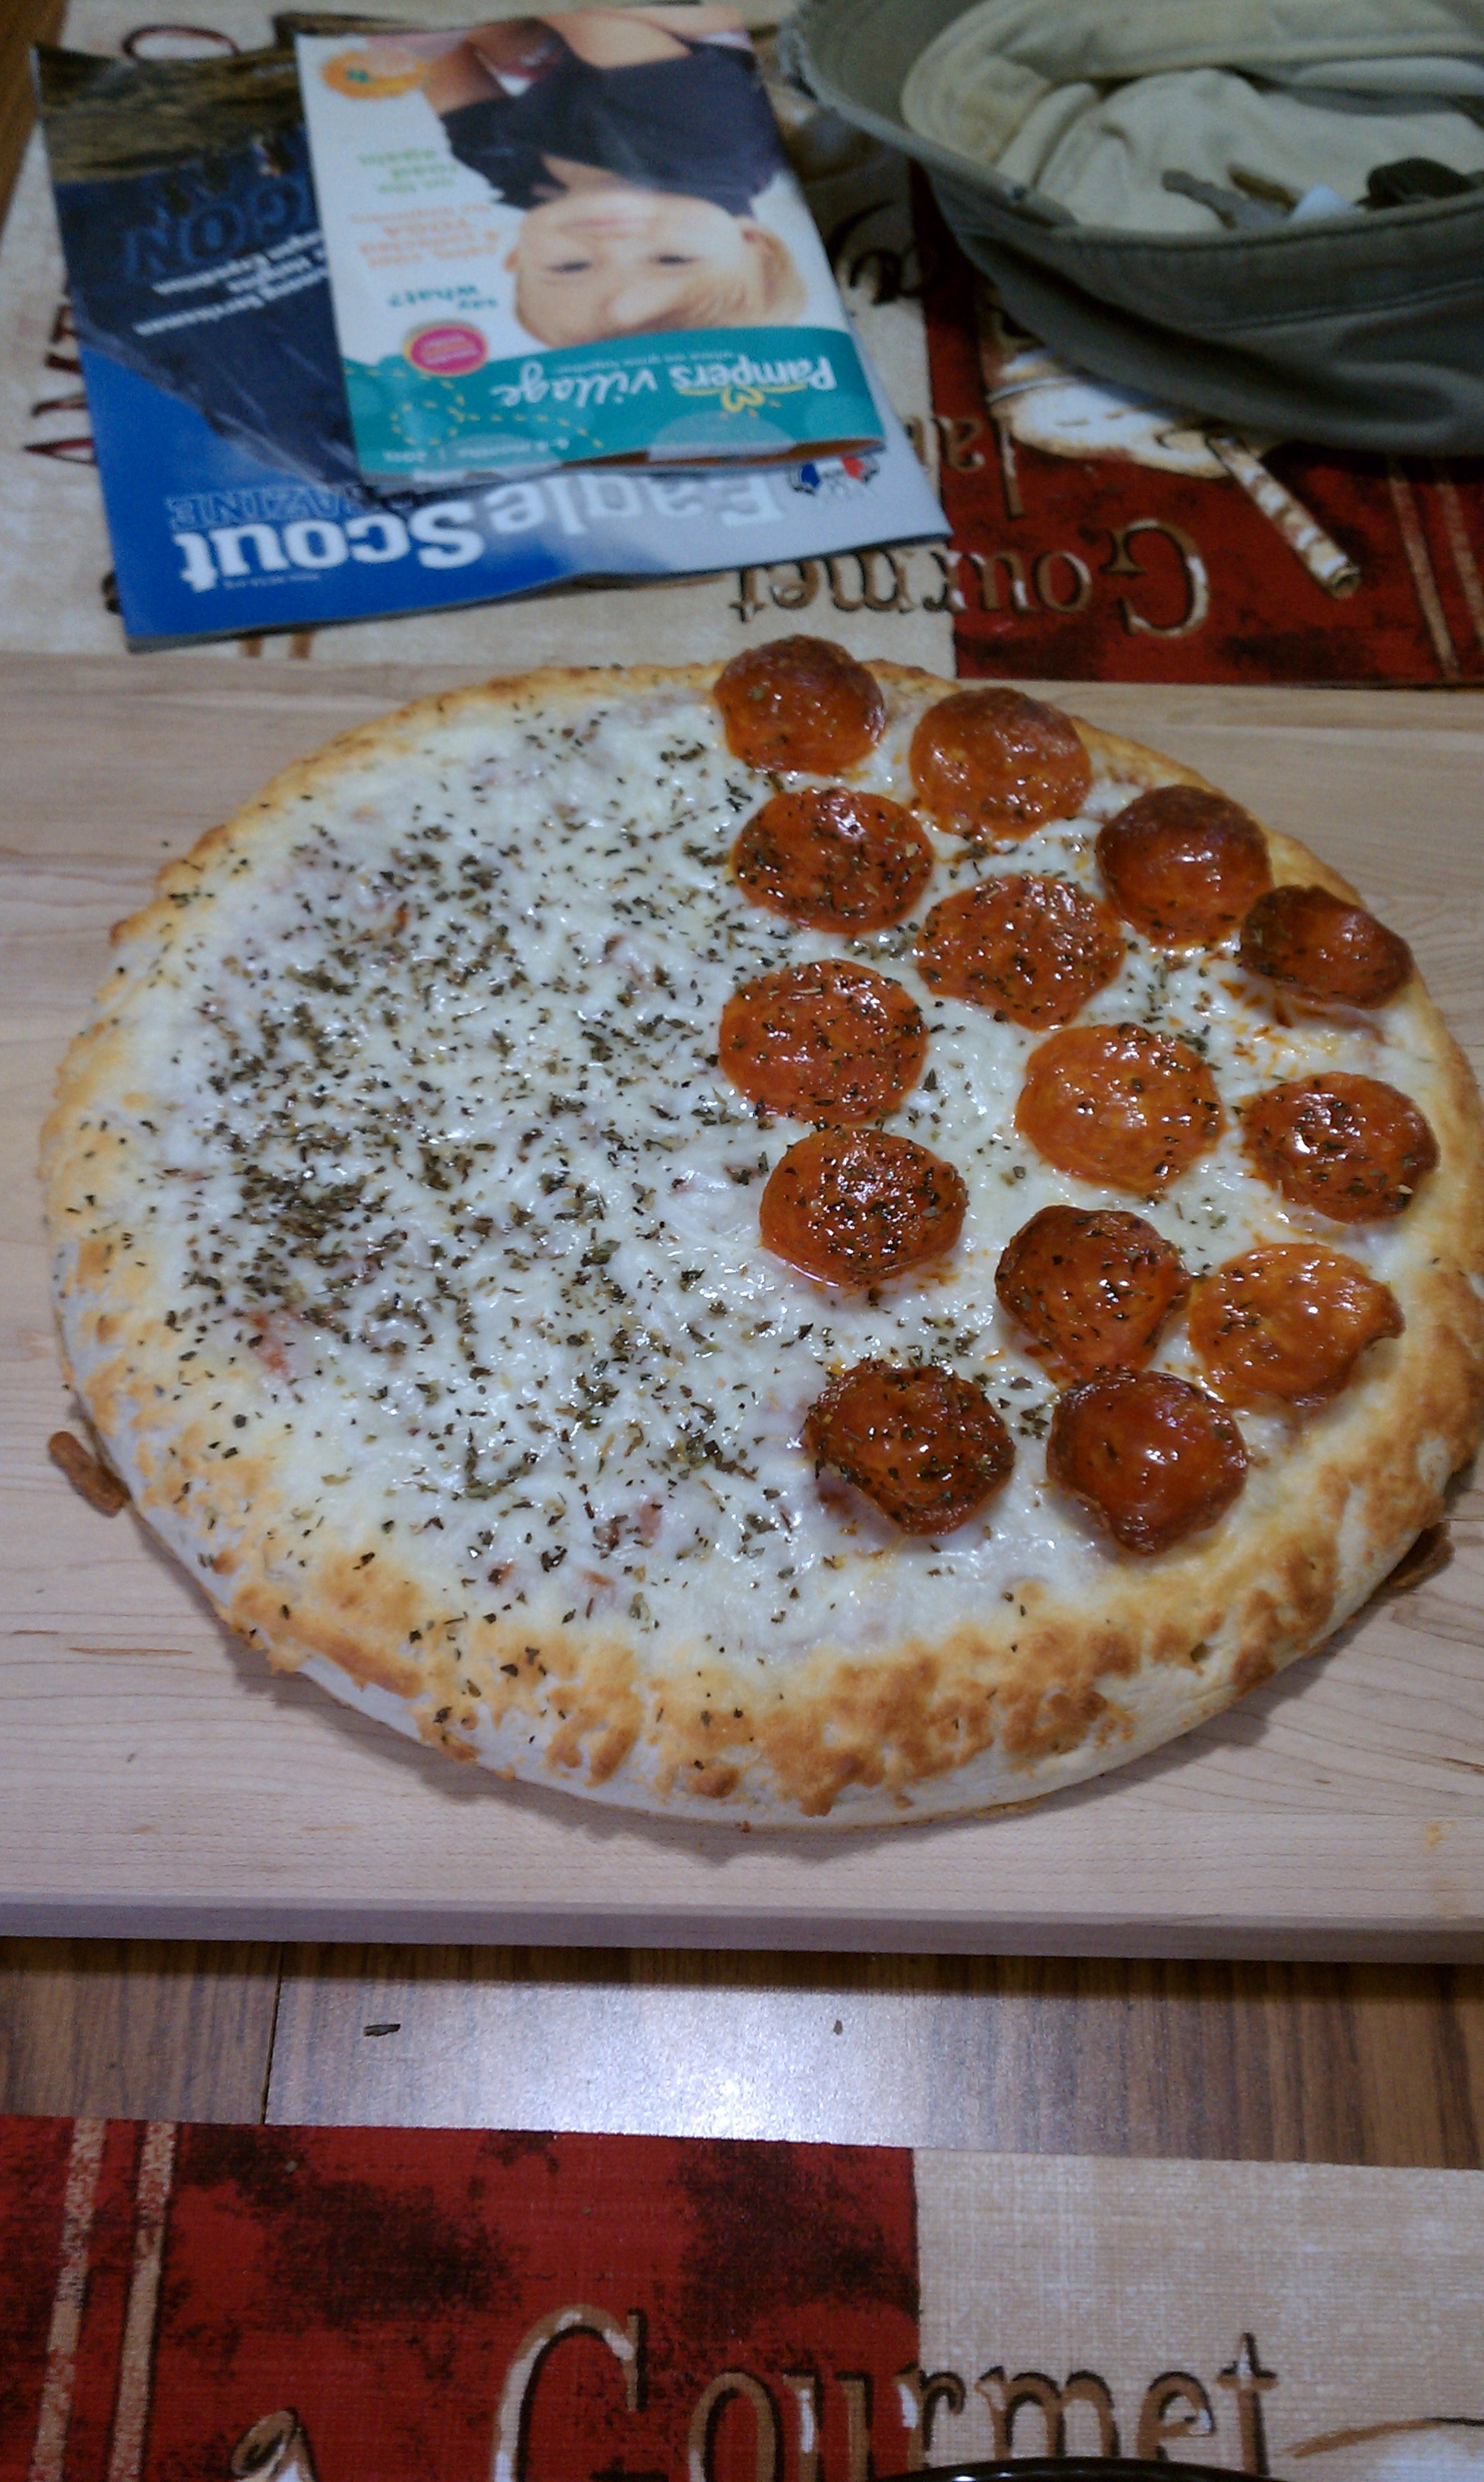 new britain CT :: price chopper frozen pizza with added goodies